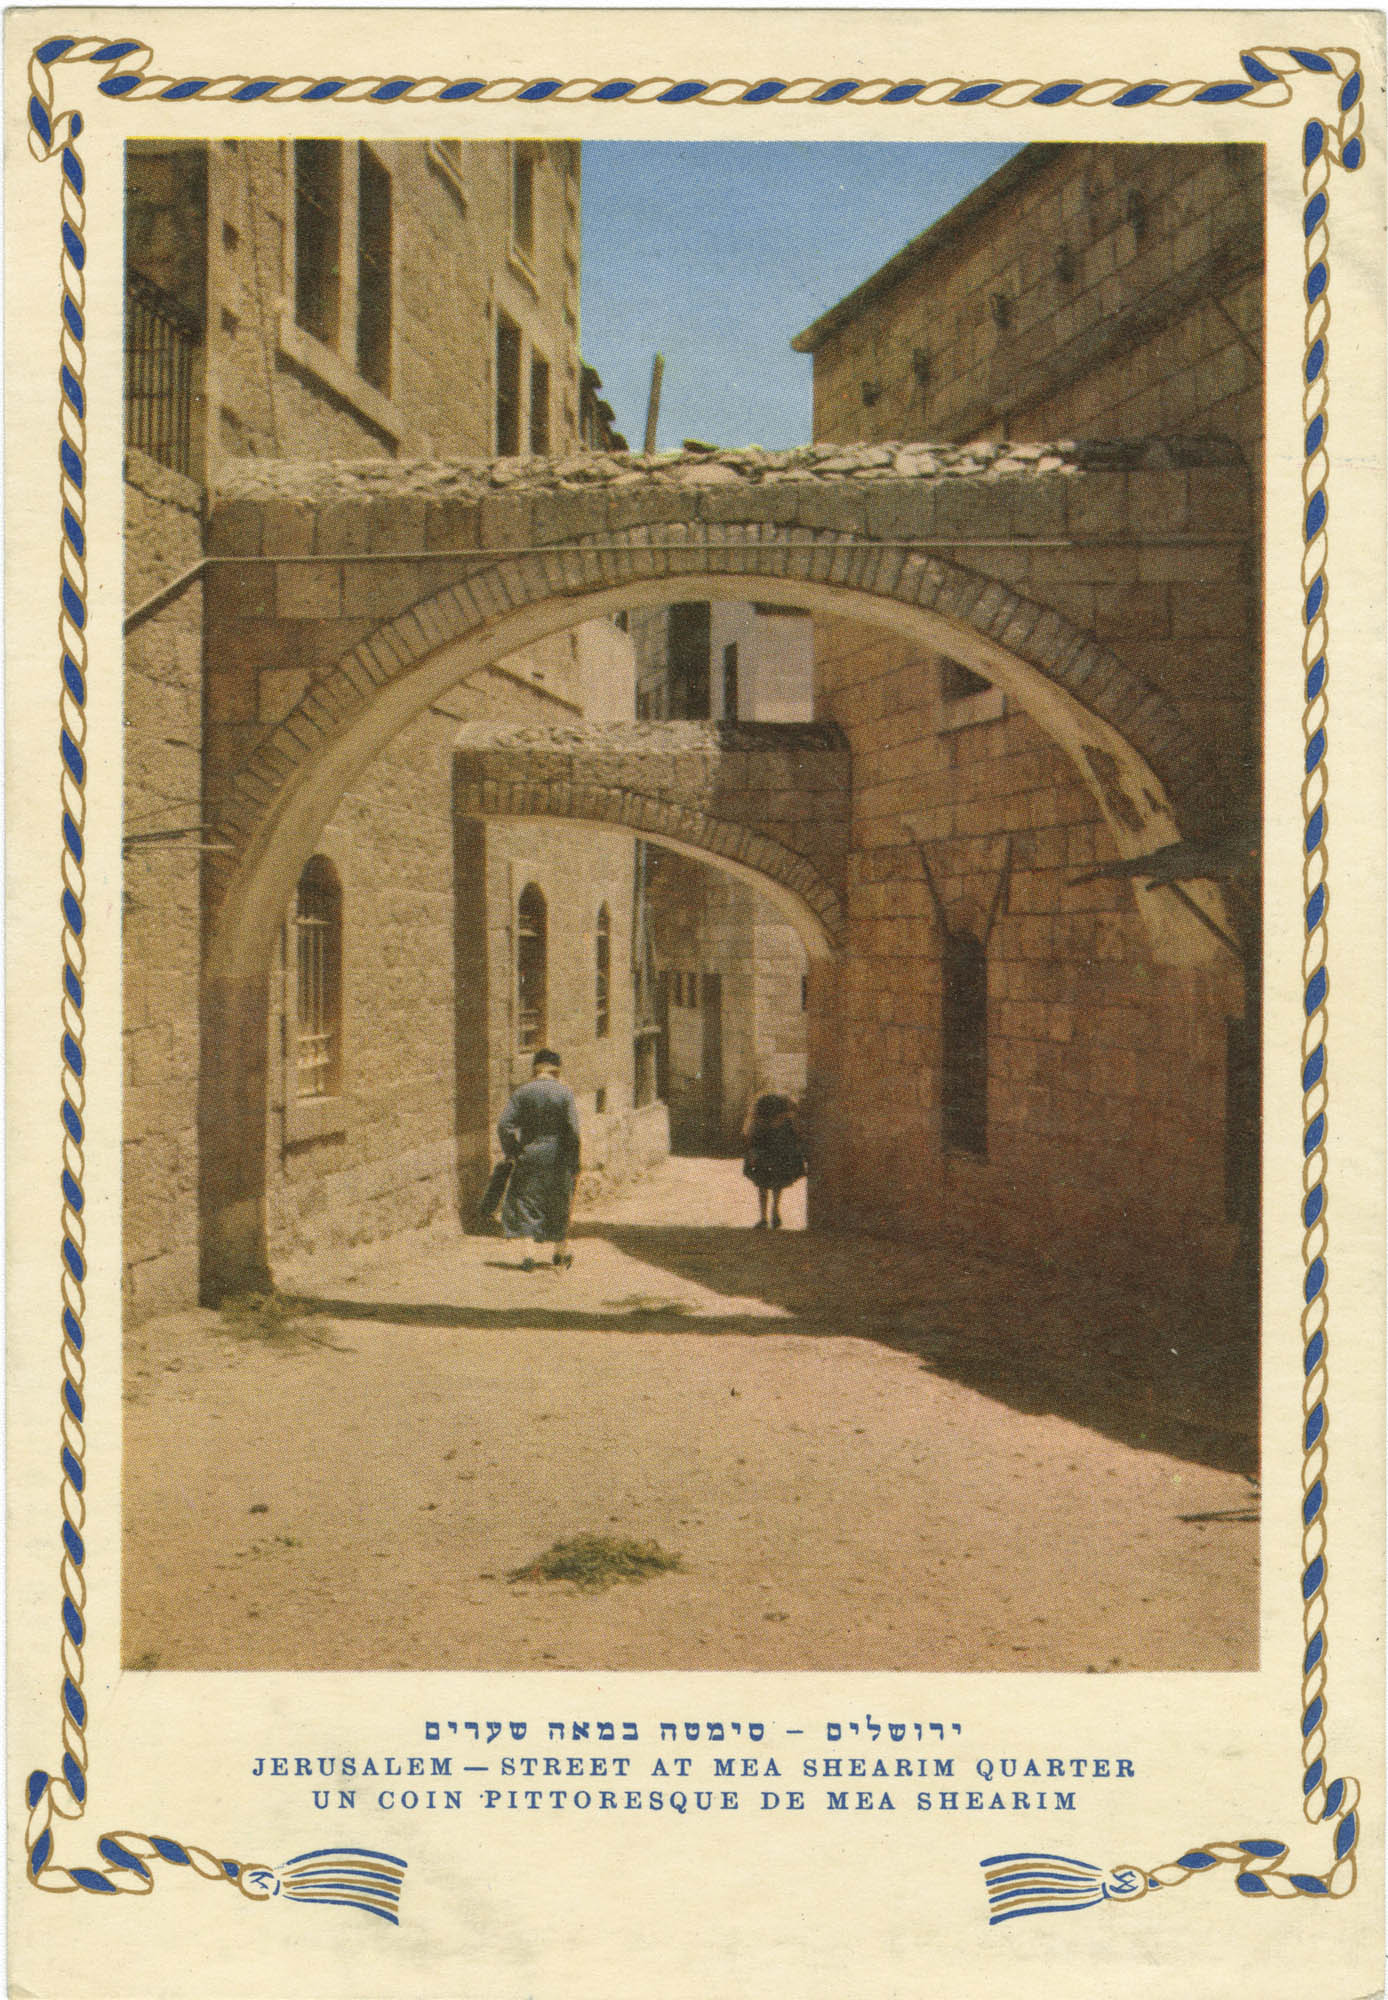 ירושלים - סימטה במאה שערים / Jerusalem - street at Mea Shearim Quarter / un coin pittoresque de Mea Shearim